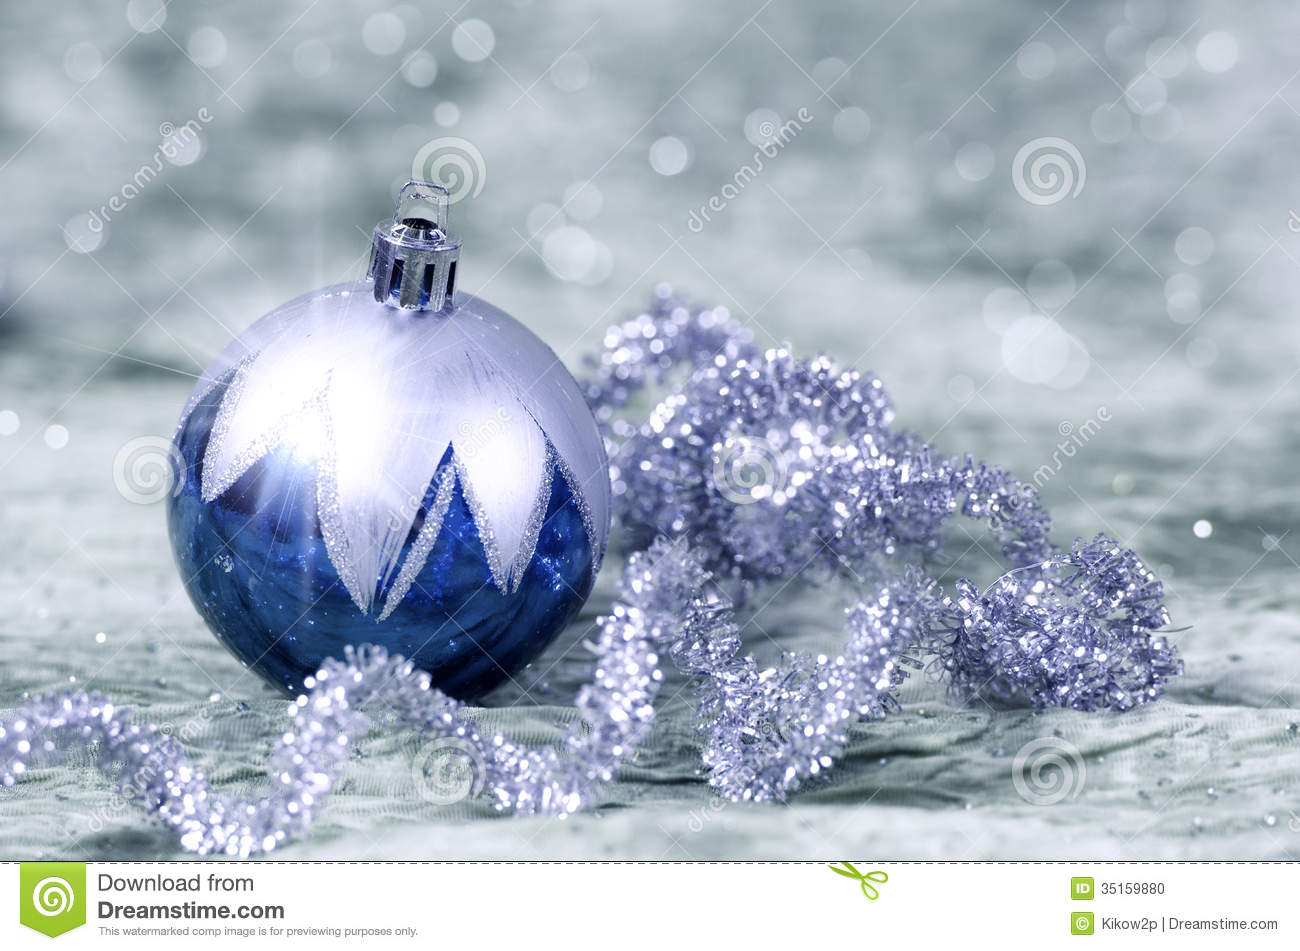 Christmas Decorations Blue And Silver Stock Photo - Image: 35159880